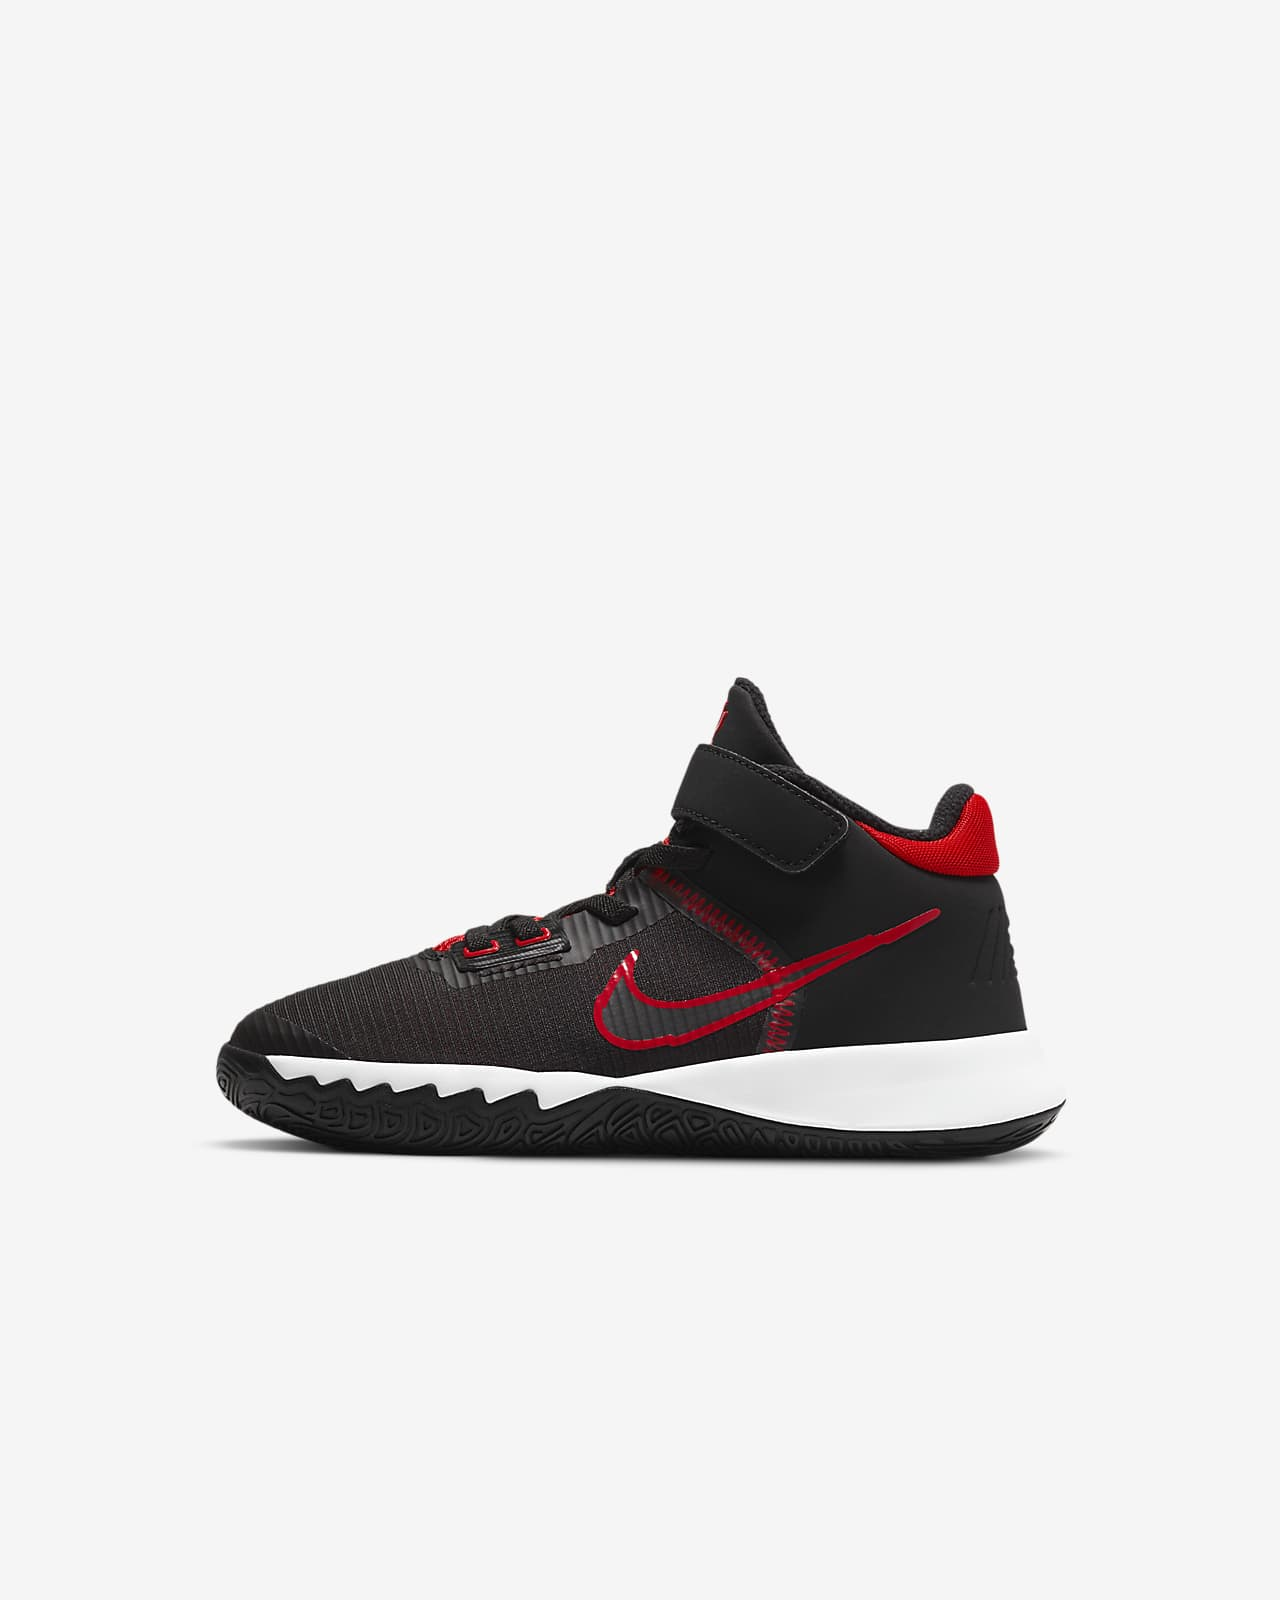 Kyrie Flytrap 4 Younger Kids' Shoe